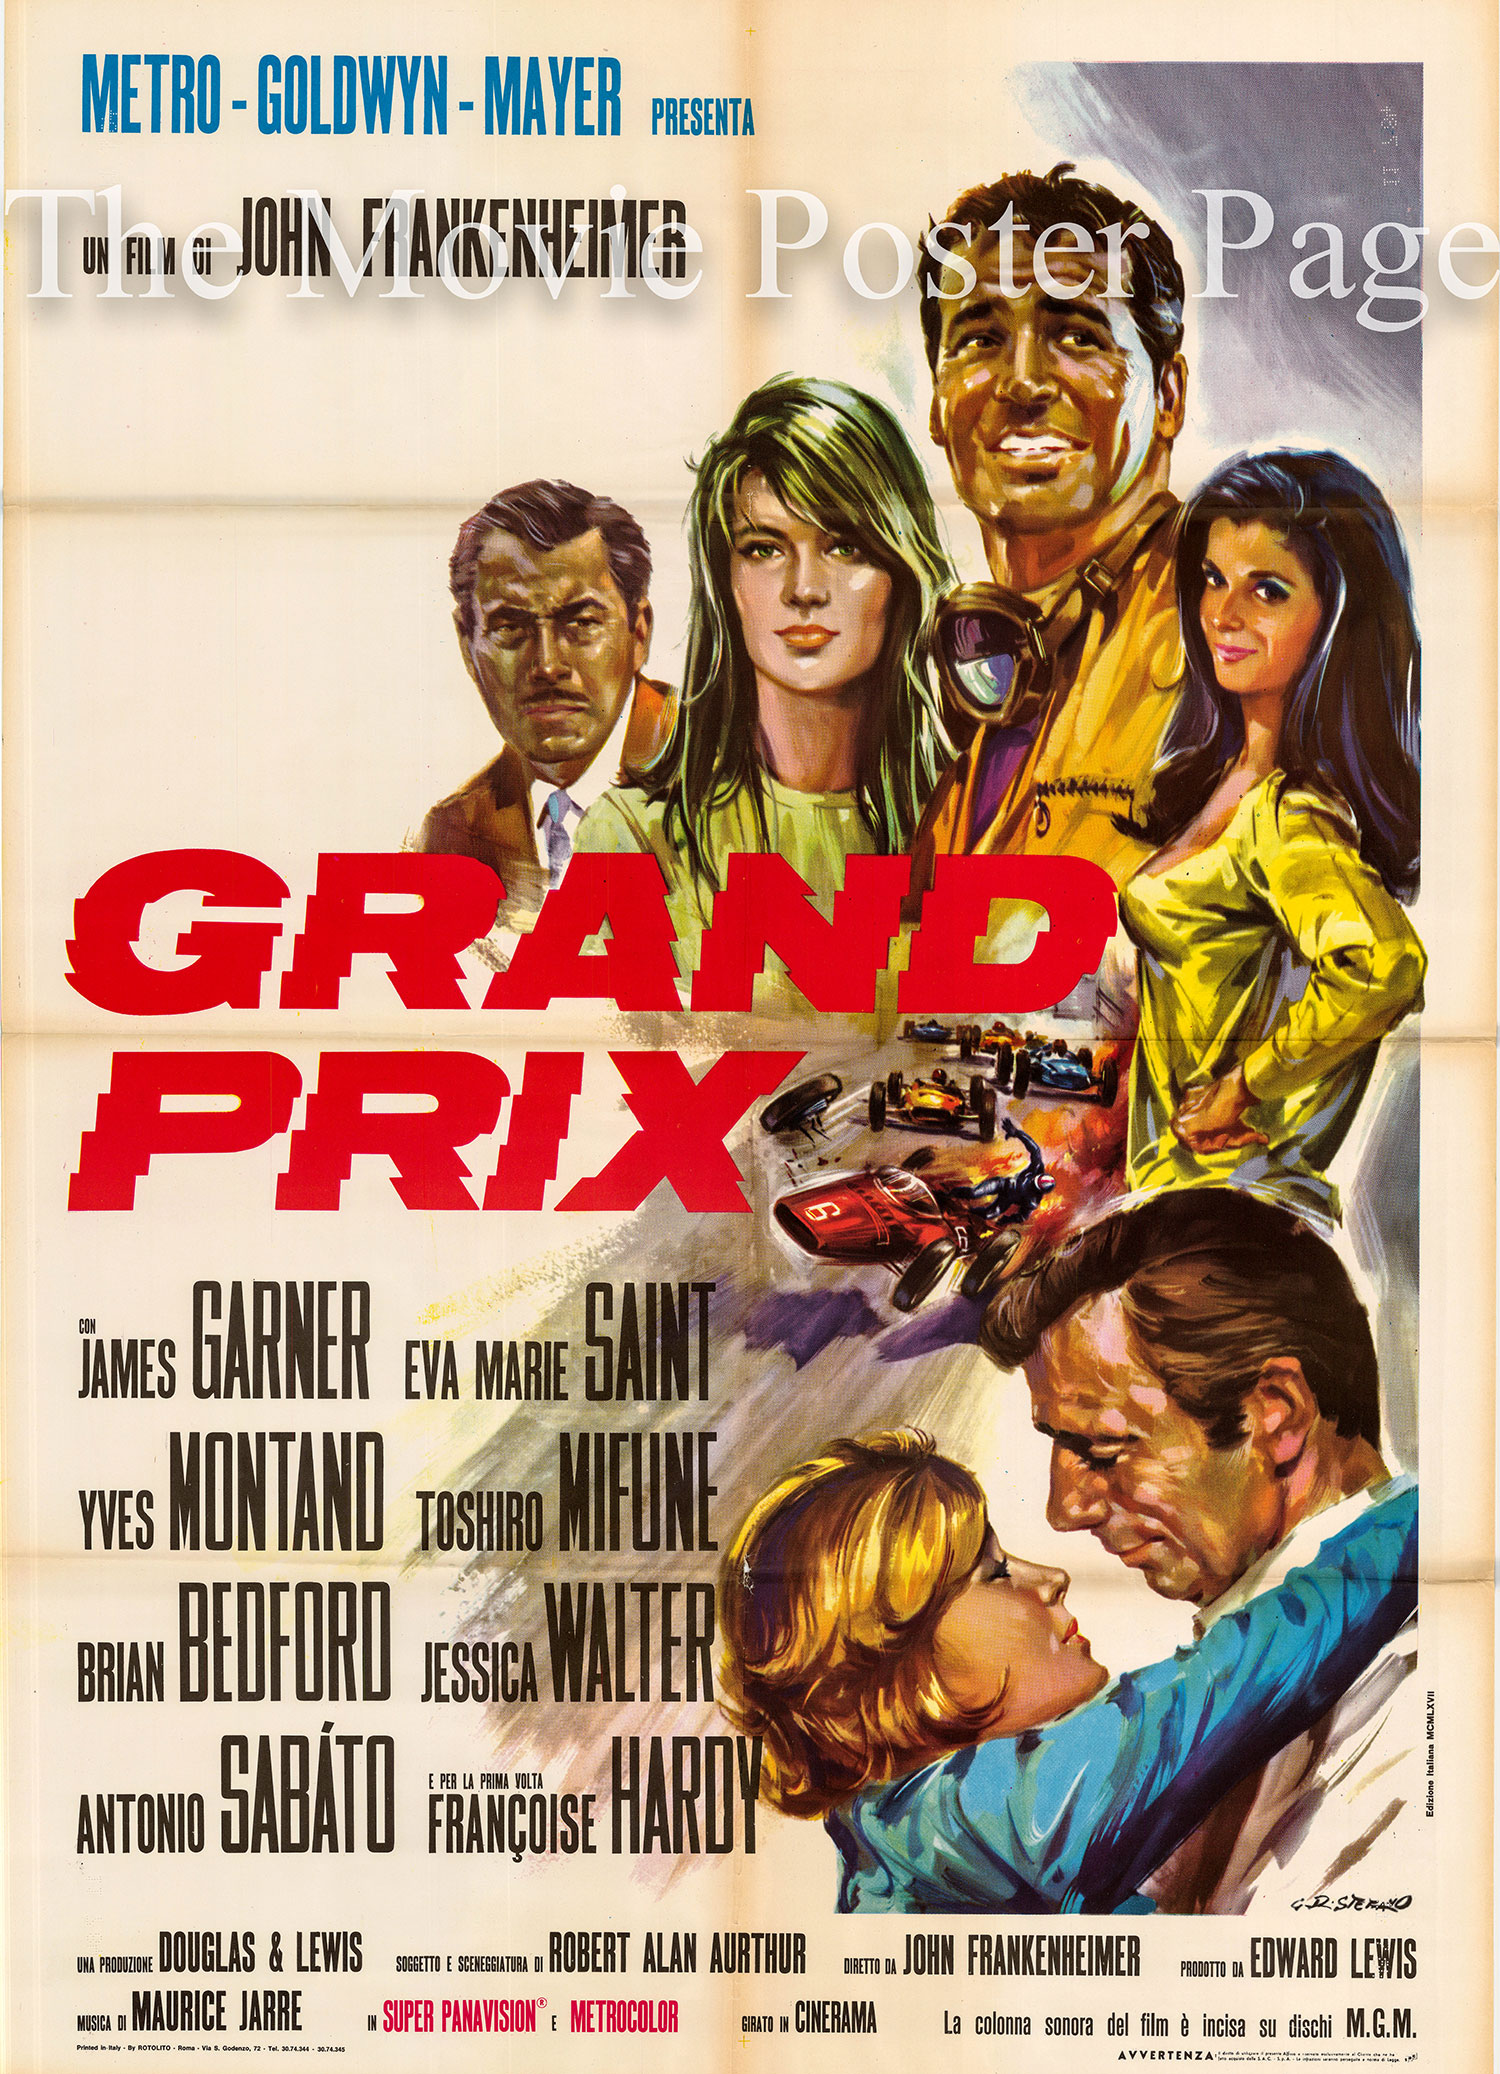 Pictured is an Italian two-sheet promotional poster for the 1967 John Frankenheimer film Grand Prix starring James Garner as Pete Aron.